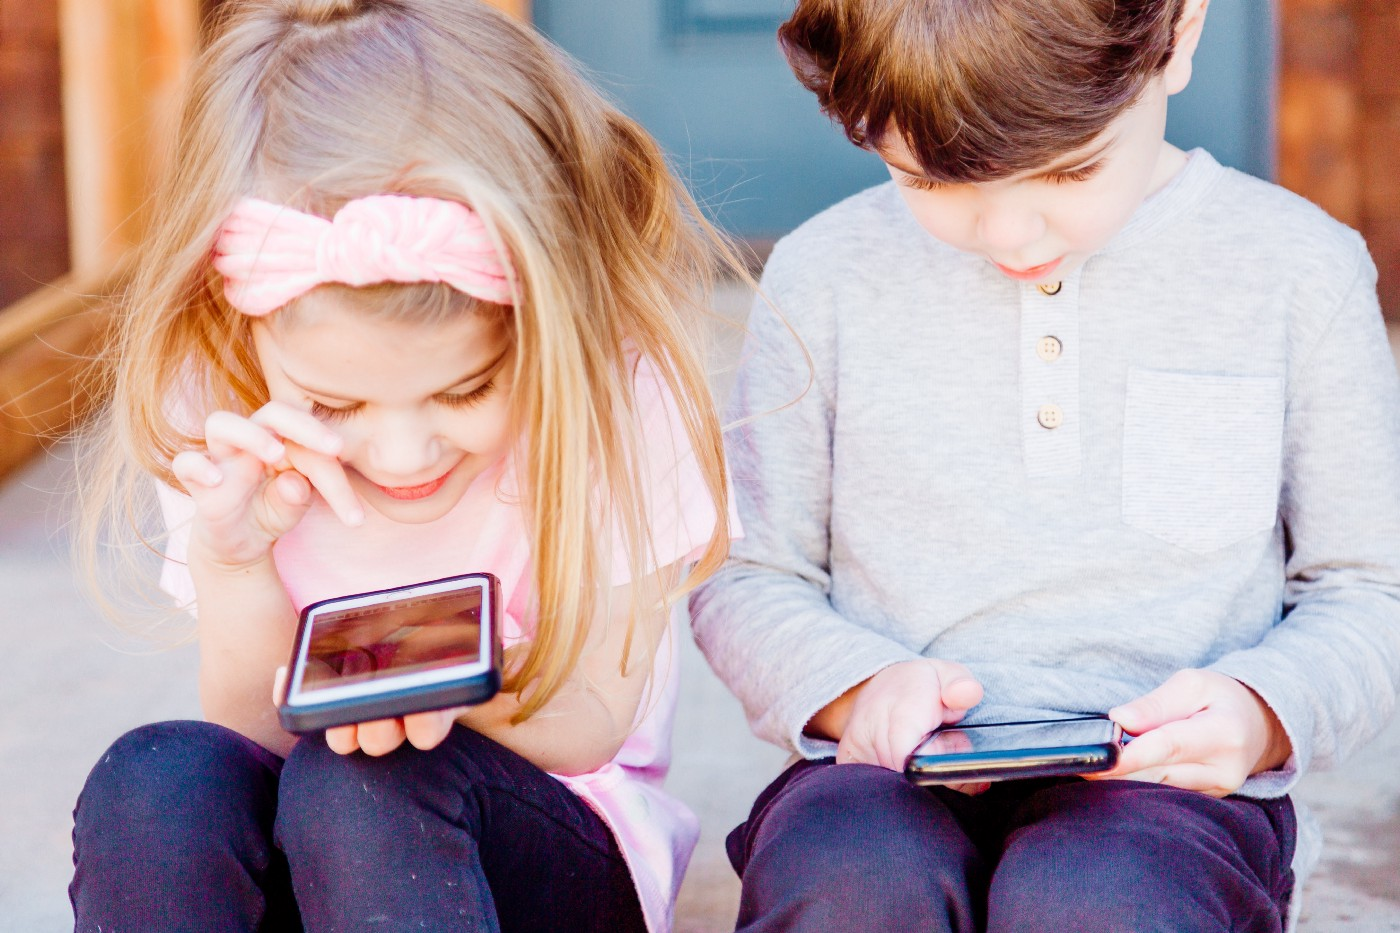 Photograph of two children playing on mobile devices